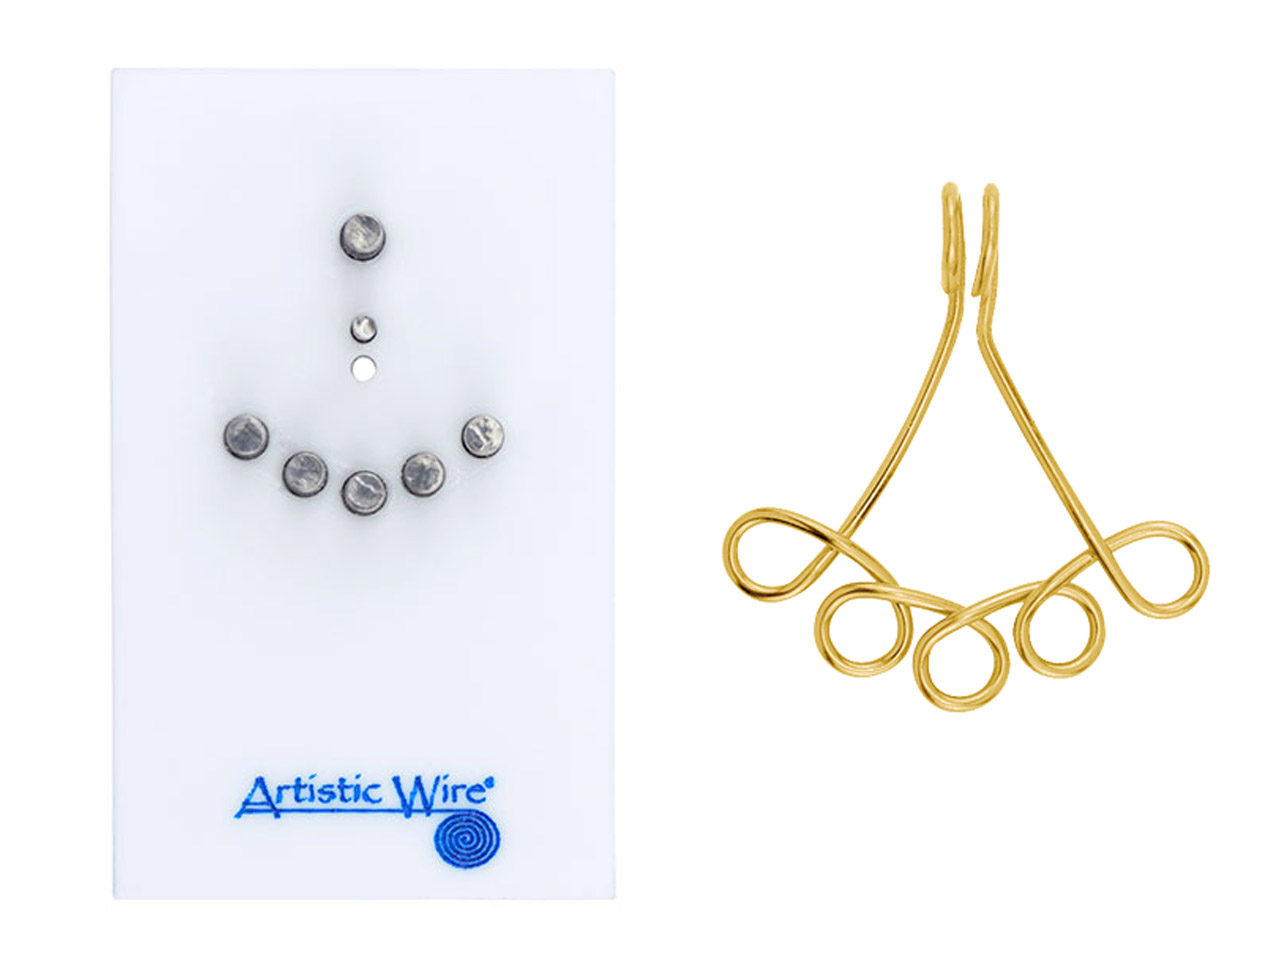 Beadalon Artistic Wire Findings    Forms Connector 1:5 Jig